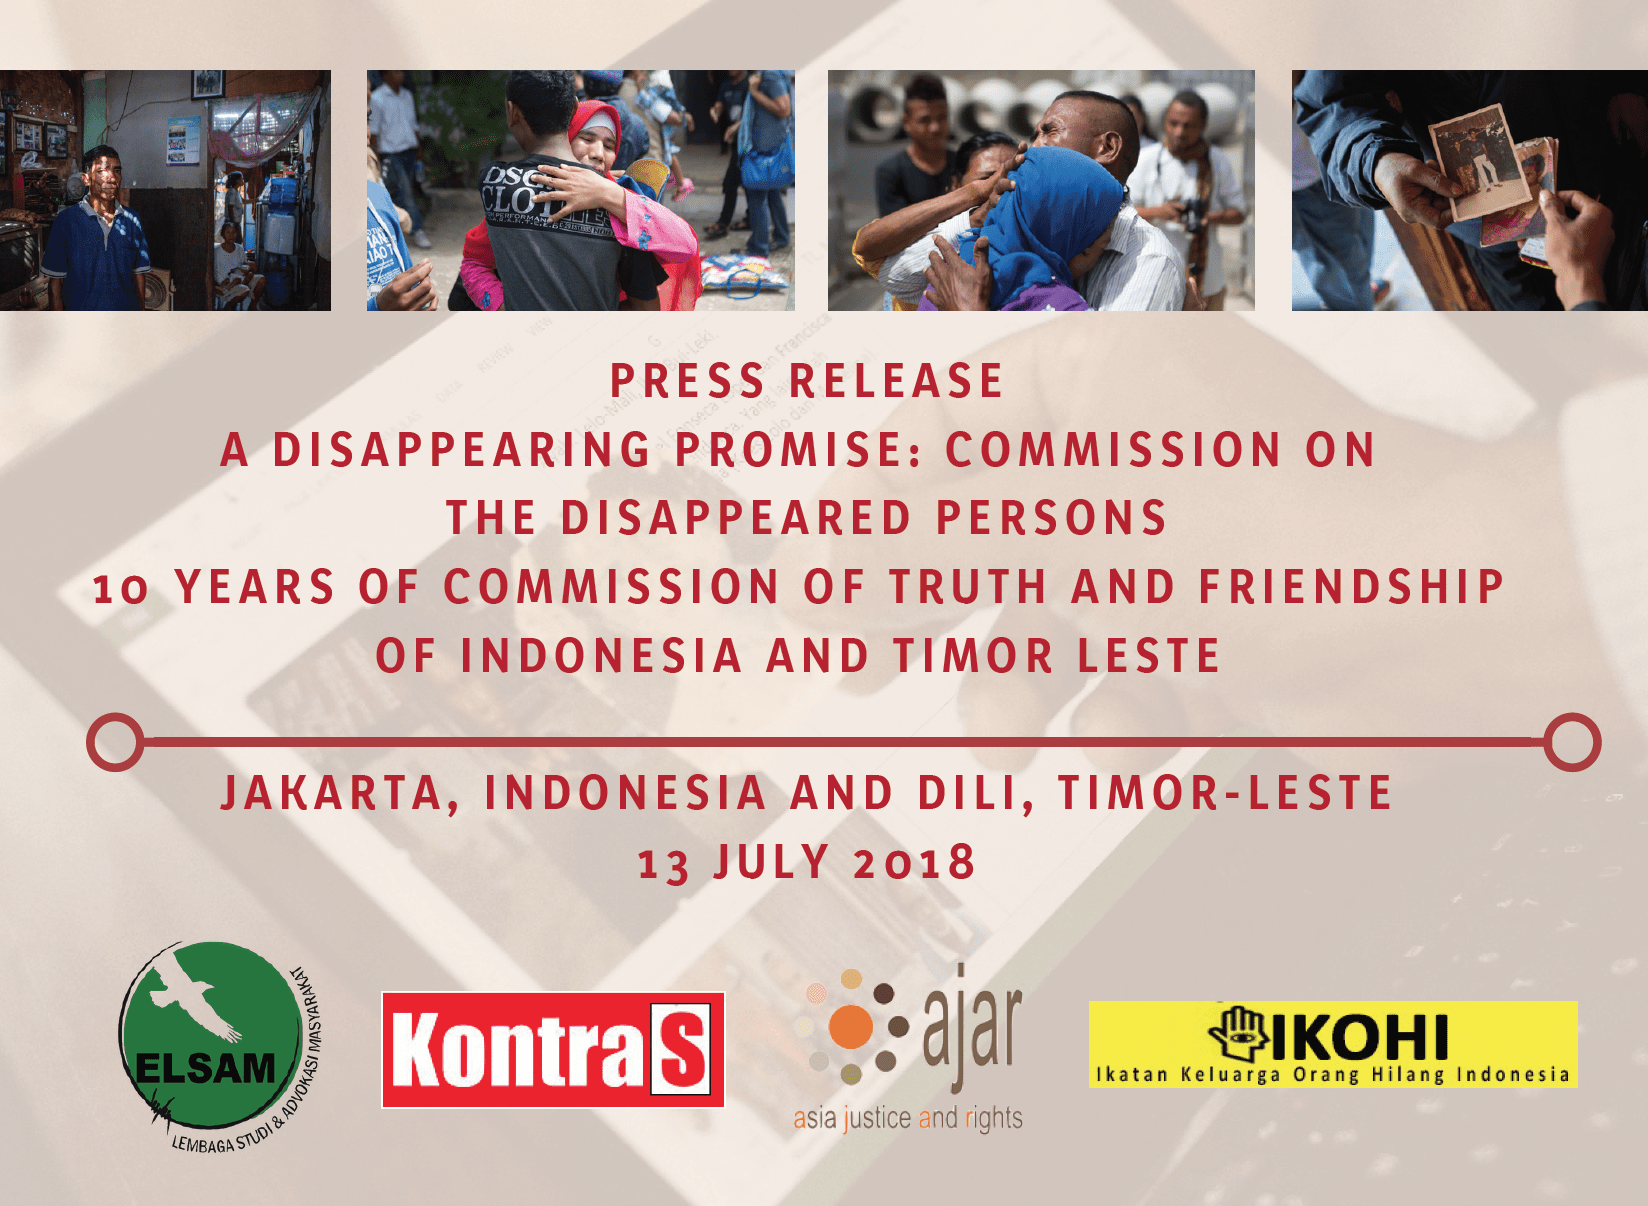 Press Release: A Disappearing Promise, 10 Years of Commission of Truth and Friendship of Indonesia and Timor Leste